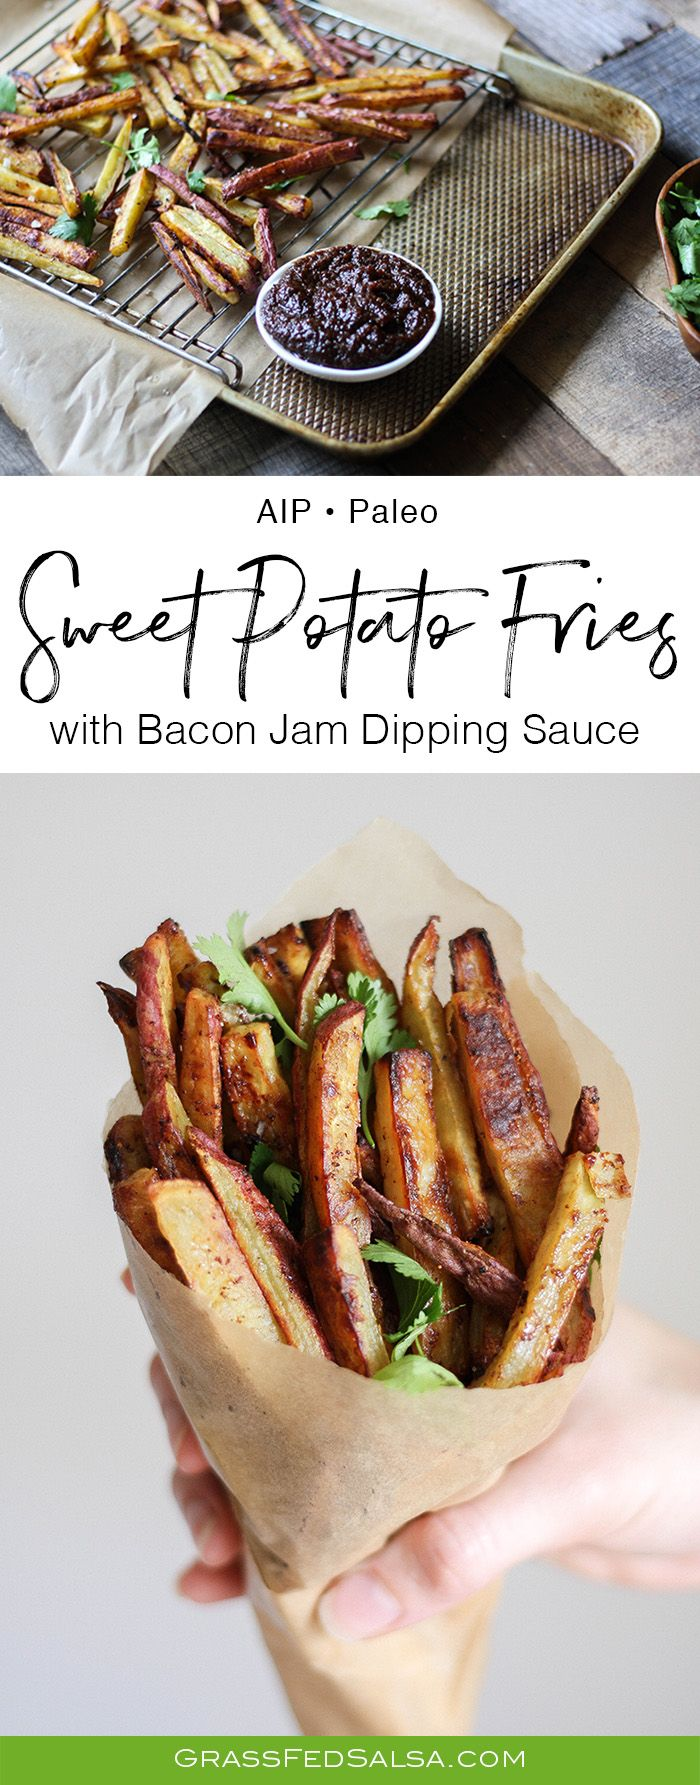 AIP Sweet Potato Fries with Bacon Jam Dipping Sauce